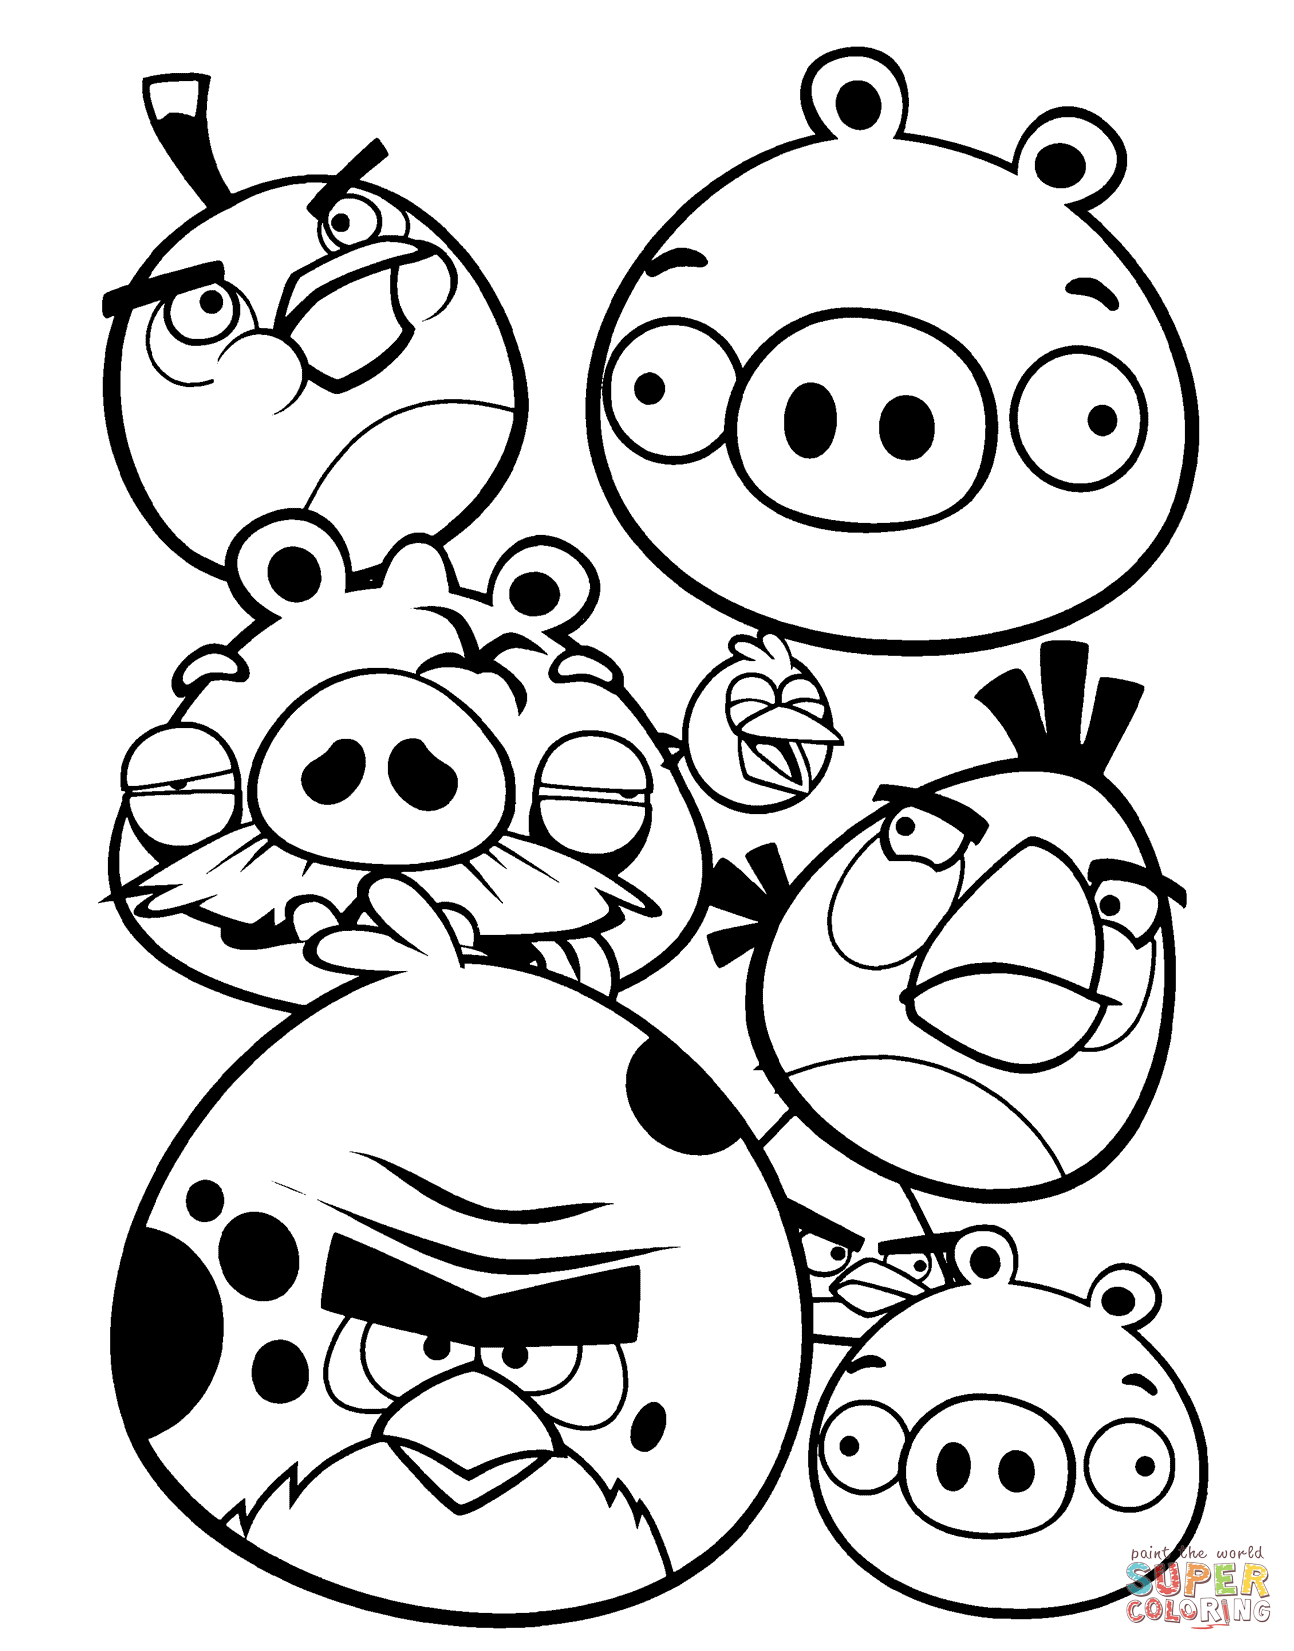 coloring pages for angry birds angry birds coloring pages coloringnori coloring pages birds pages coloring for angry